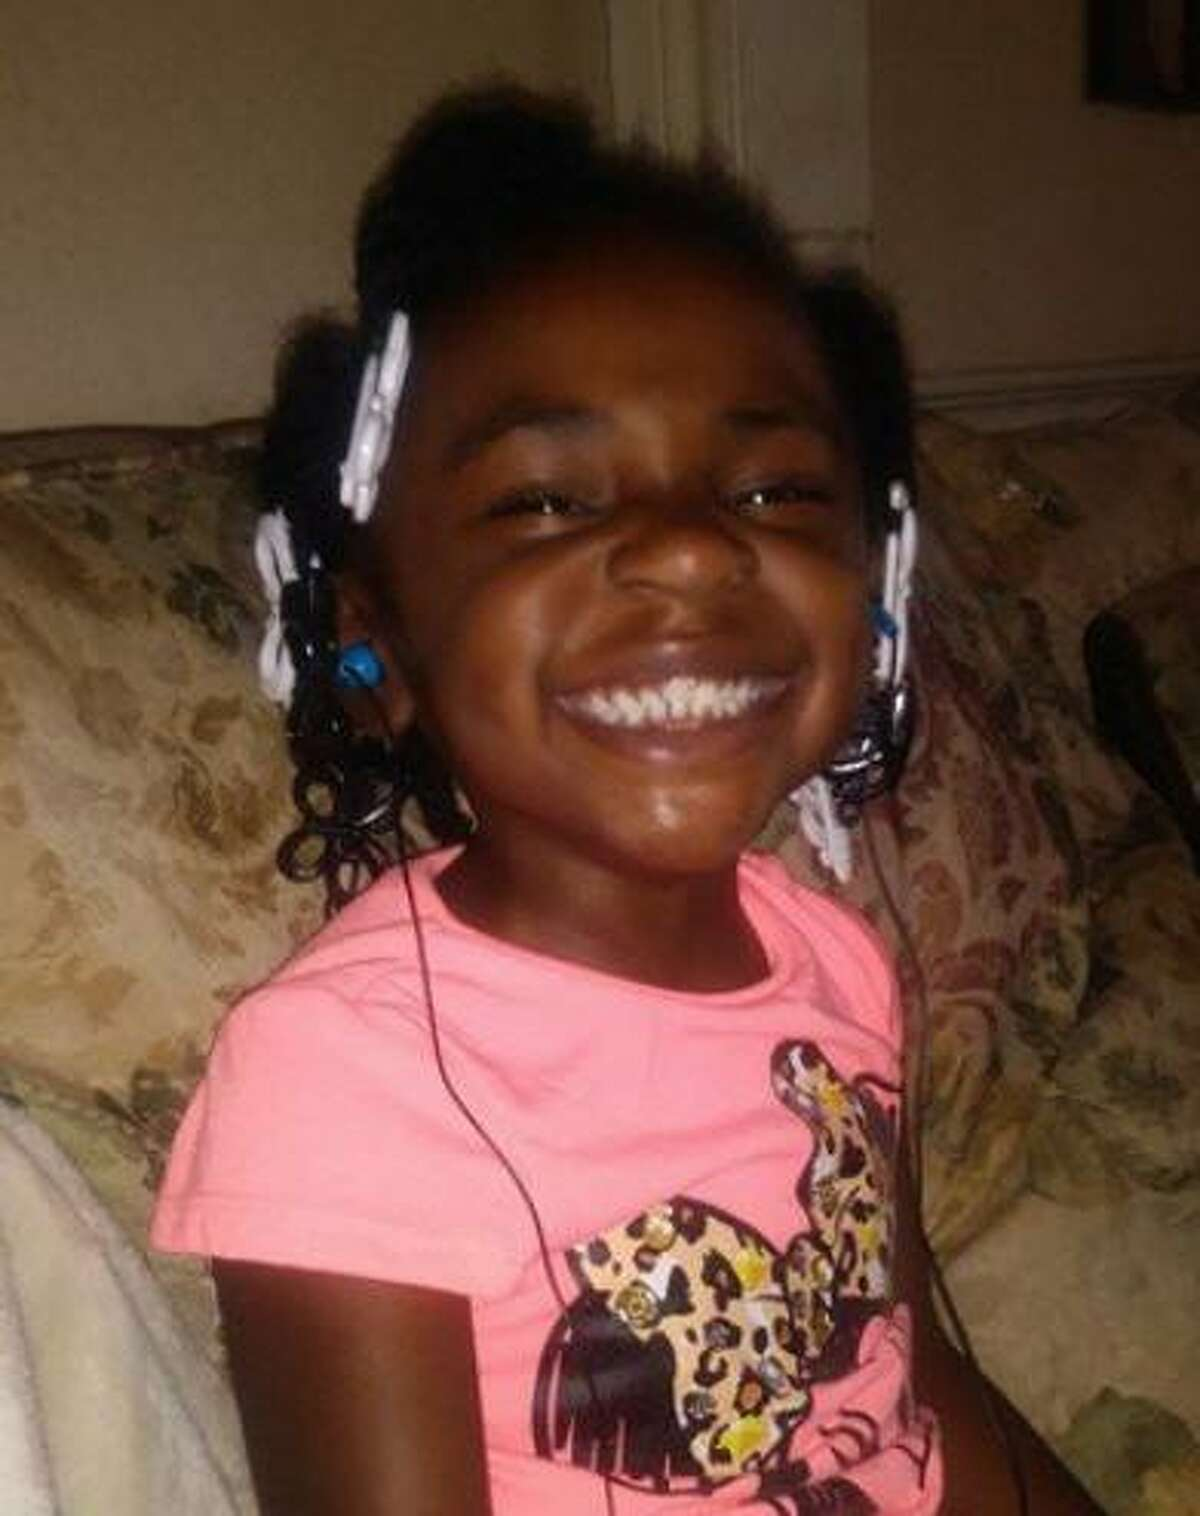 Remains suspected to be those of Rayven Shields, 3, were found Aug. 3, 2018, in Bryan, Texas. Police had been looking for the girl for nearly a week.